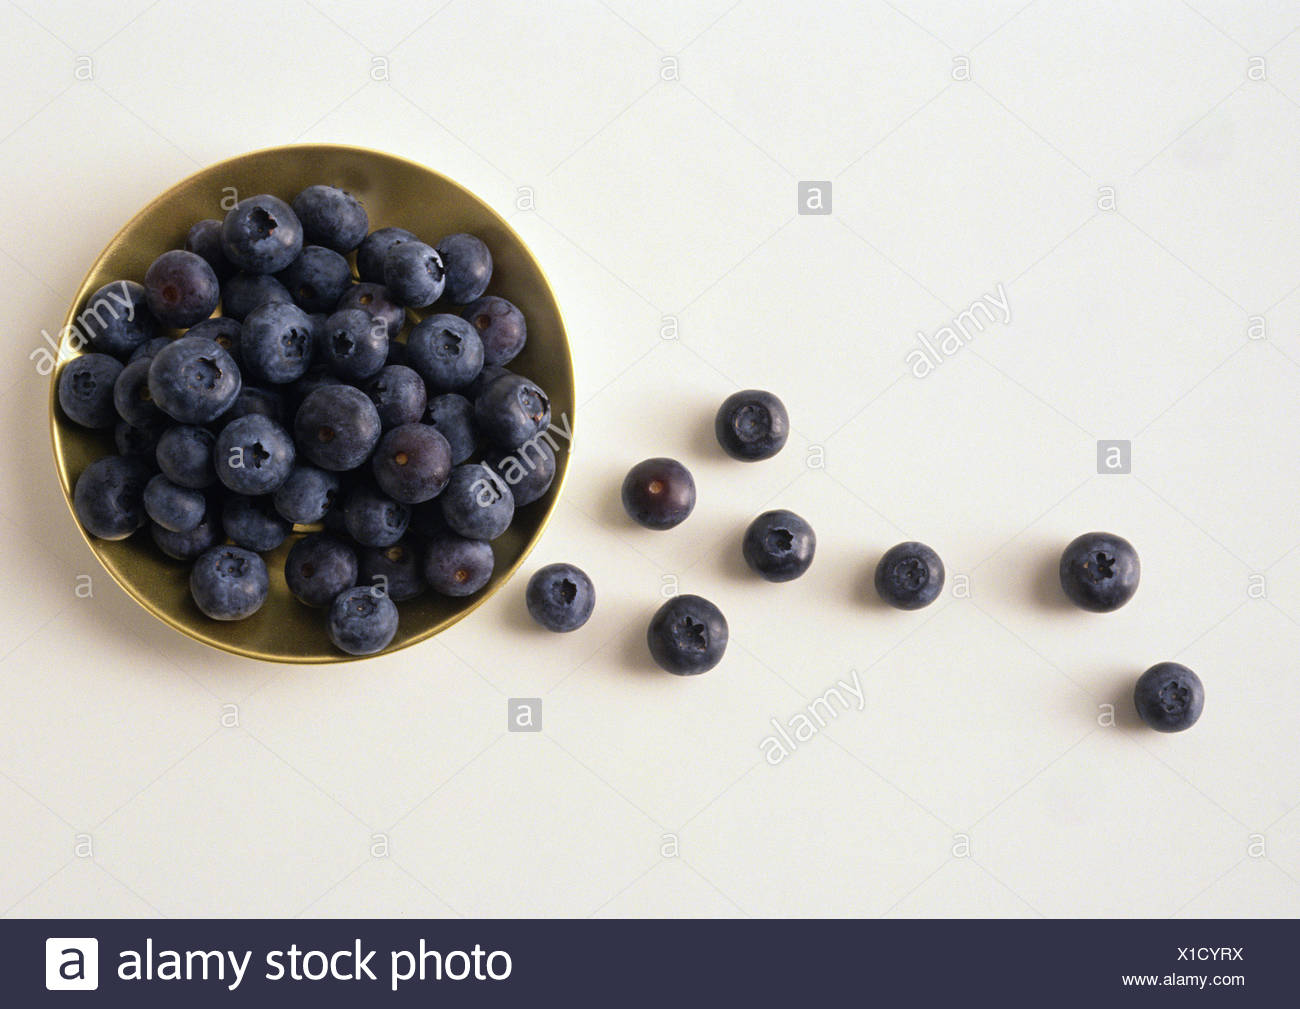 Bowl of blueberries against white background, high angle view - Stock Image